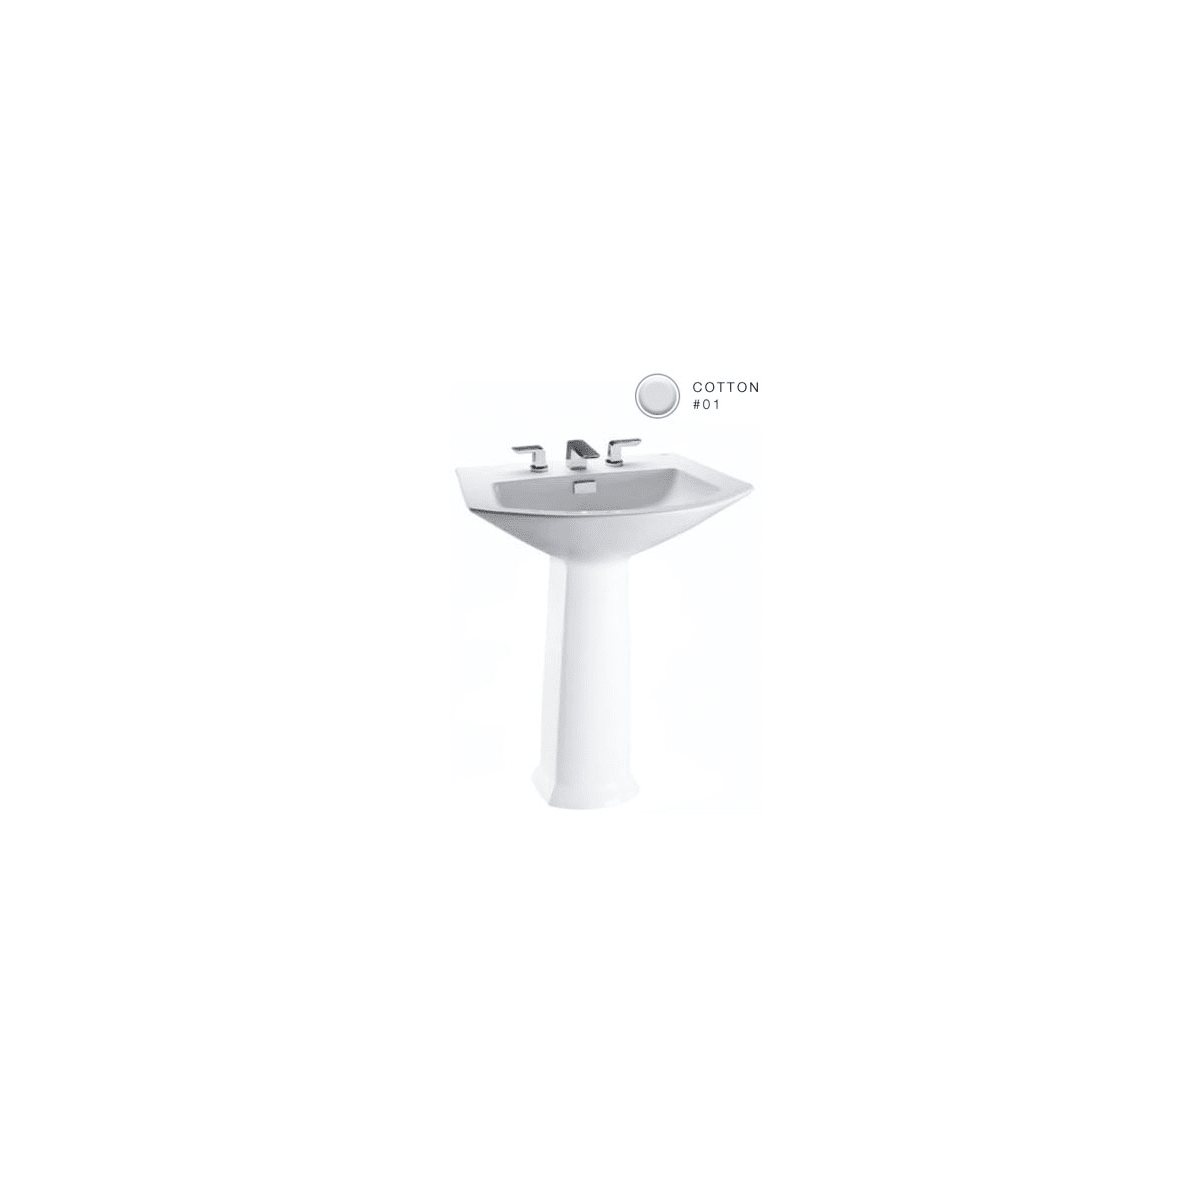 "Soiree 29-1/2"" Pedestal Bathroom Sink with 3 Faucet Holes Drilled and Overflow - Less Pedestal"